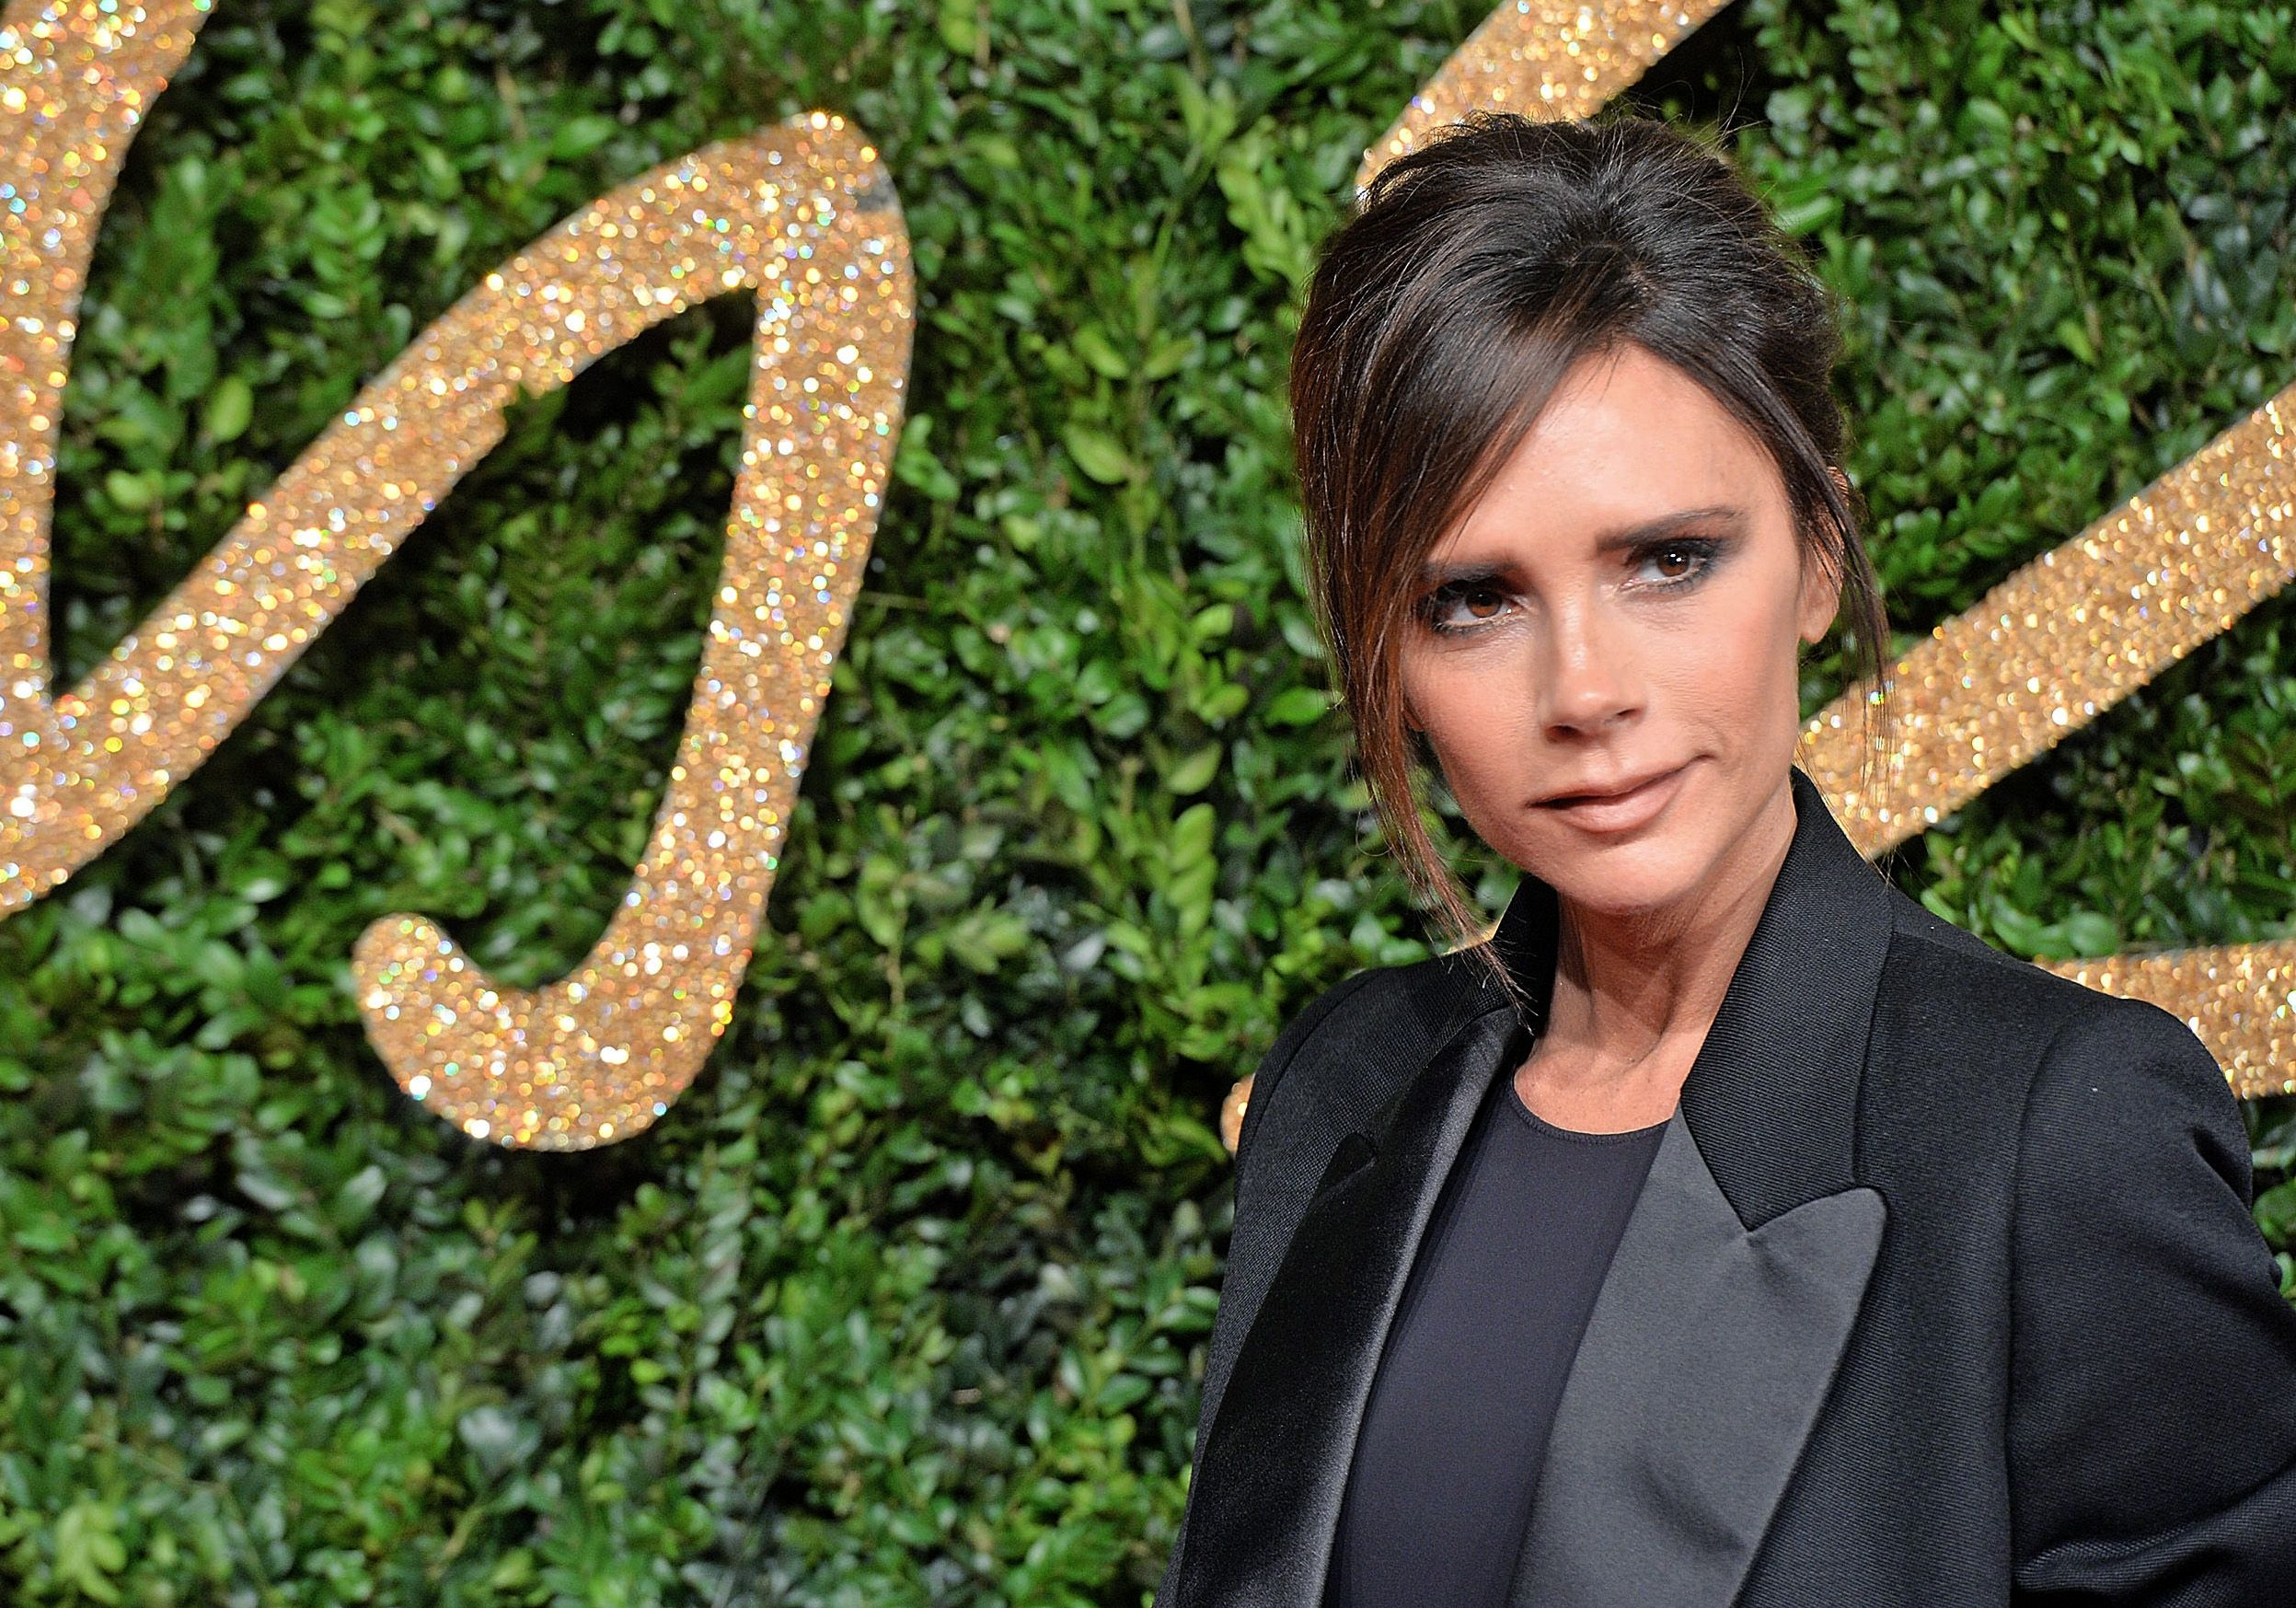 Victoria Beckham at the British Fashion Awards 2015 at London Coliseum on November 23, 2015 in London, England   Photo: Getty Images